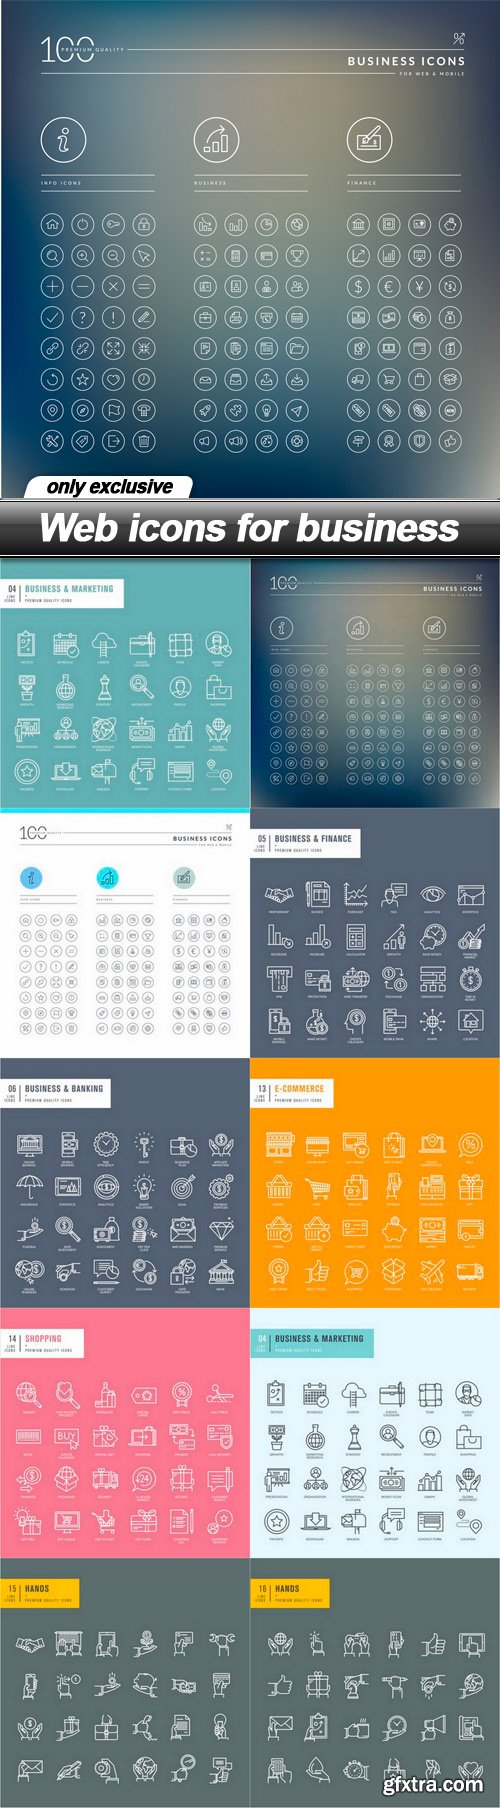 Web icons for business - 10 EPS